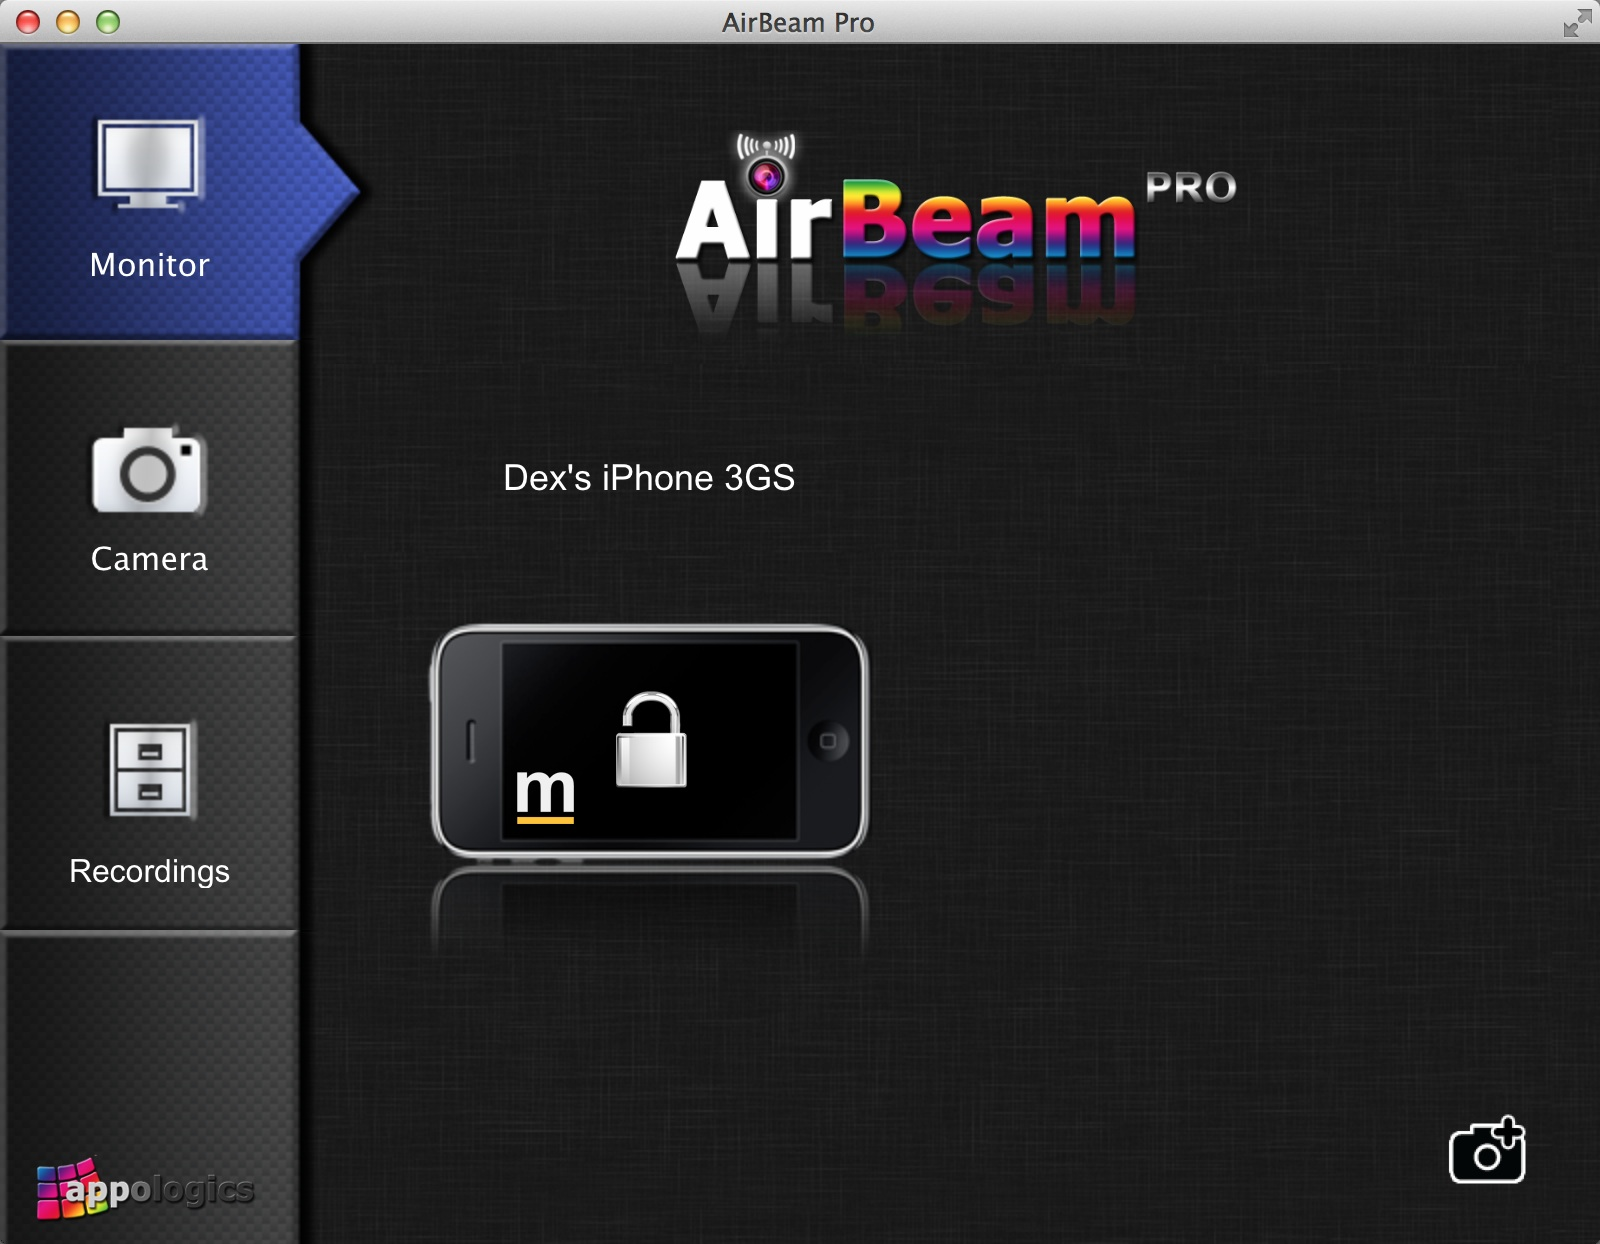 http://thedigitalstory.com/2013/08/26/airbeam-security.jpg